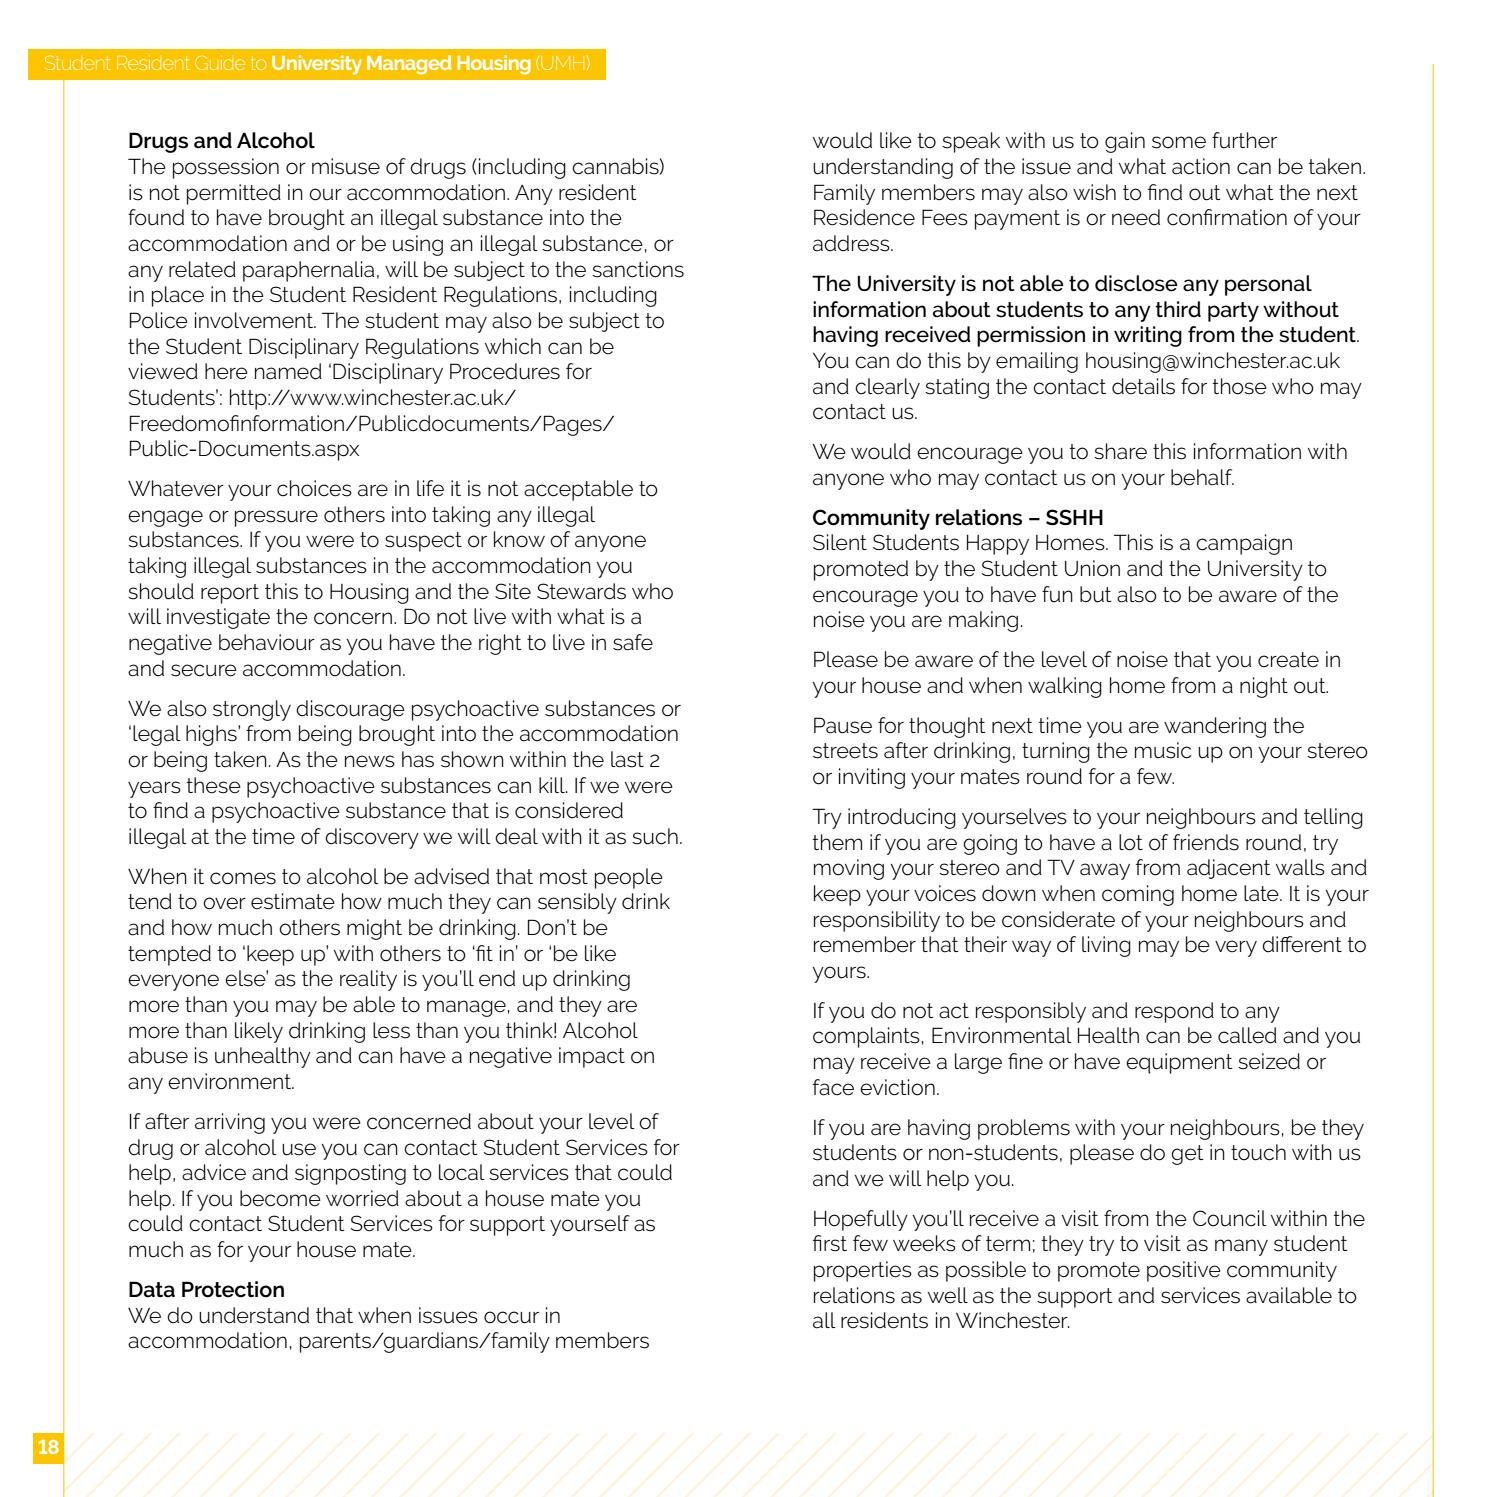 Student resident guide off campus and regulations 2018 19[1]